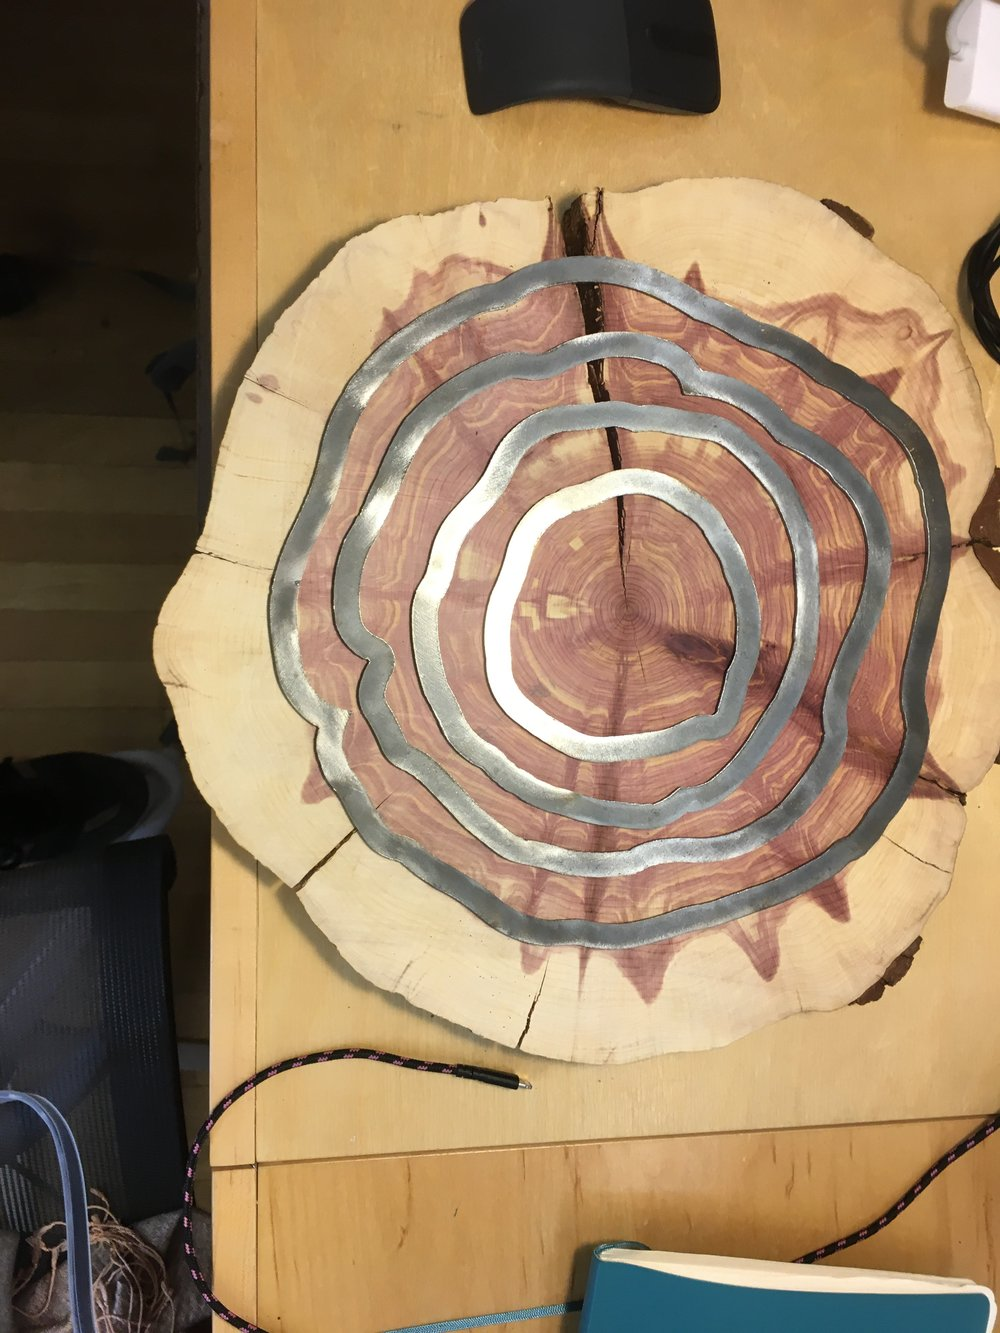 Stump slice after installing the metal rings